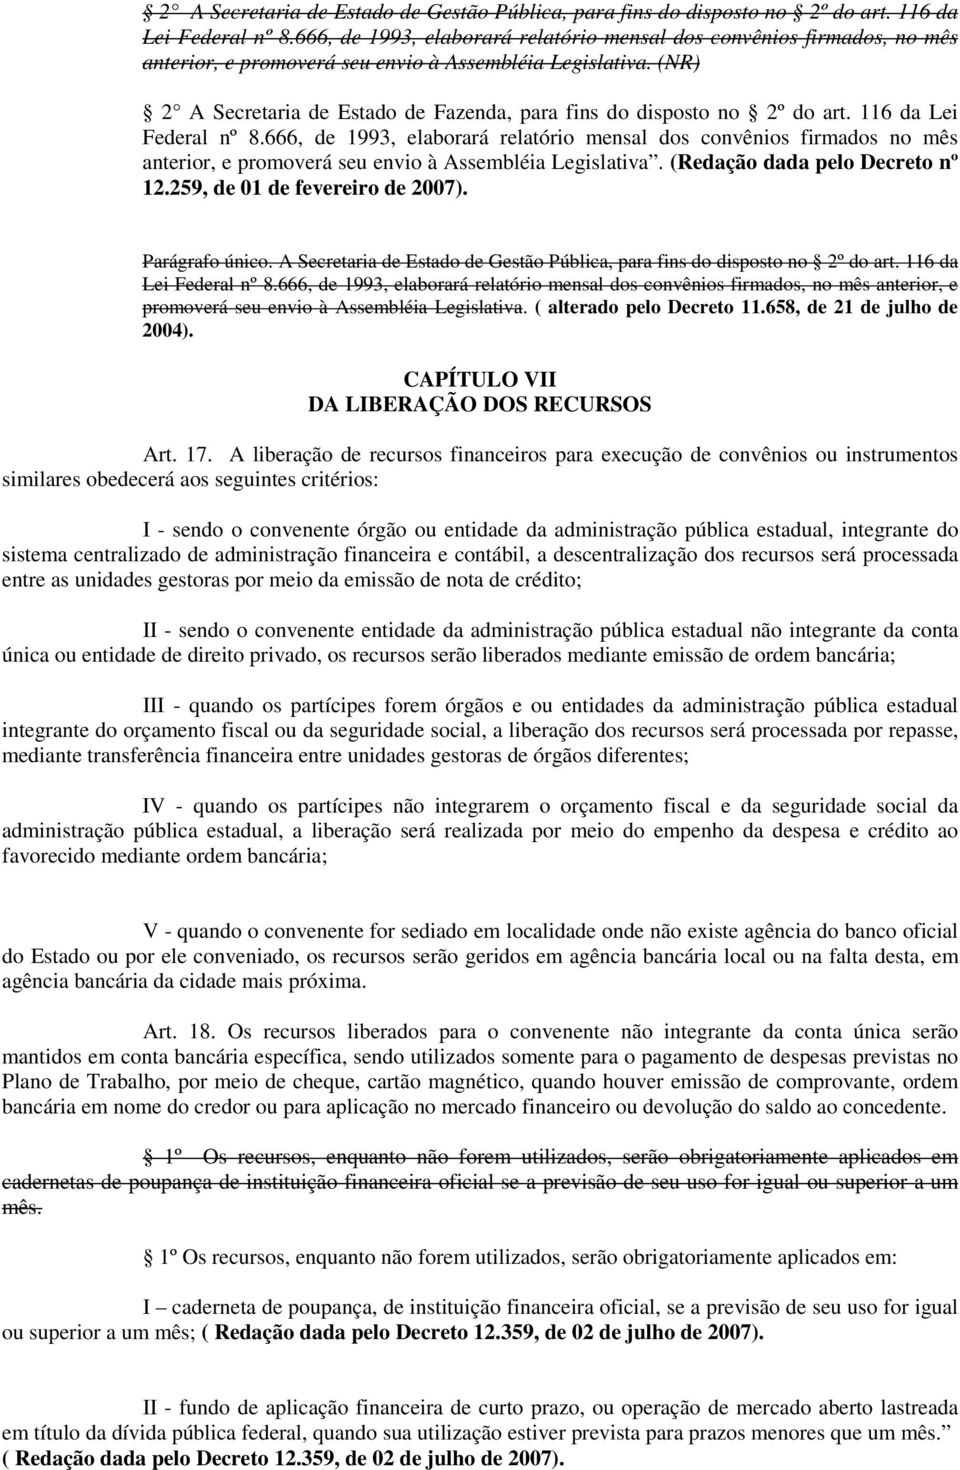 (NR) 2 A Secretaria de Estado de Fazenda, para fins do disposto no 2º do art. 116 da Lei Federal nº 8.